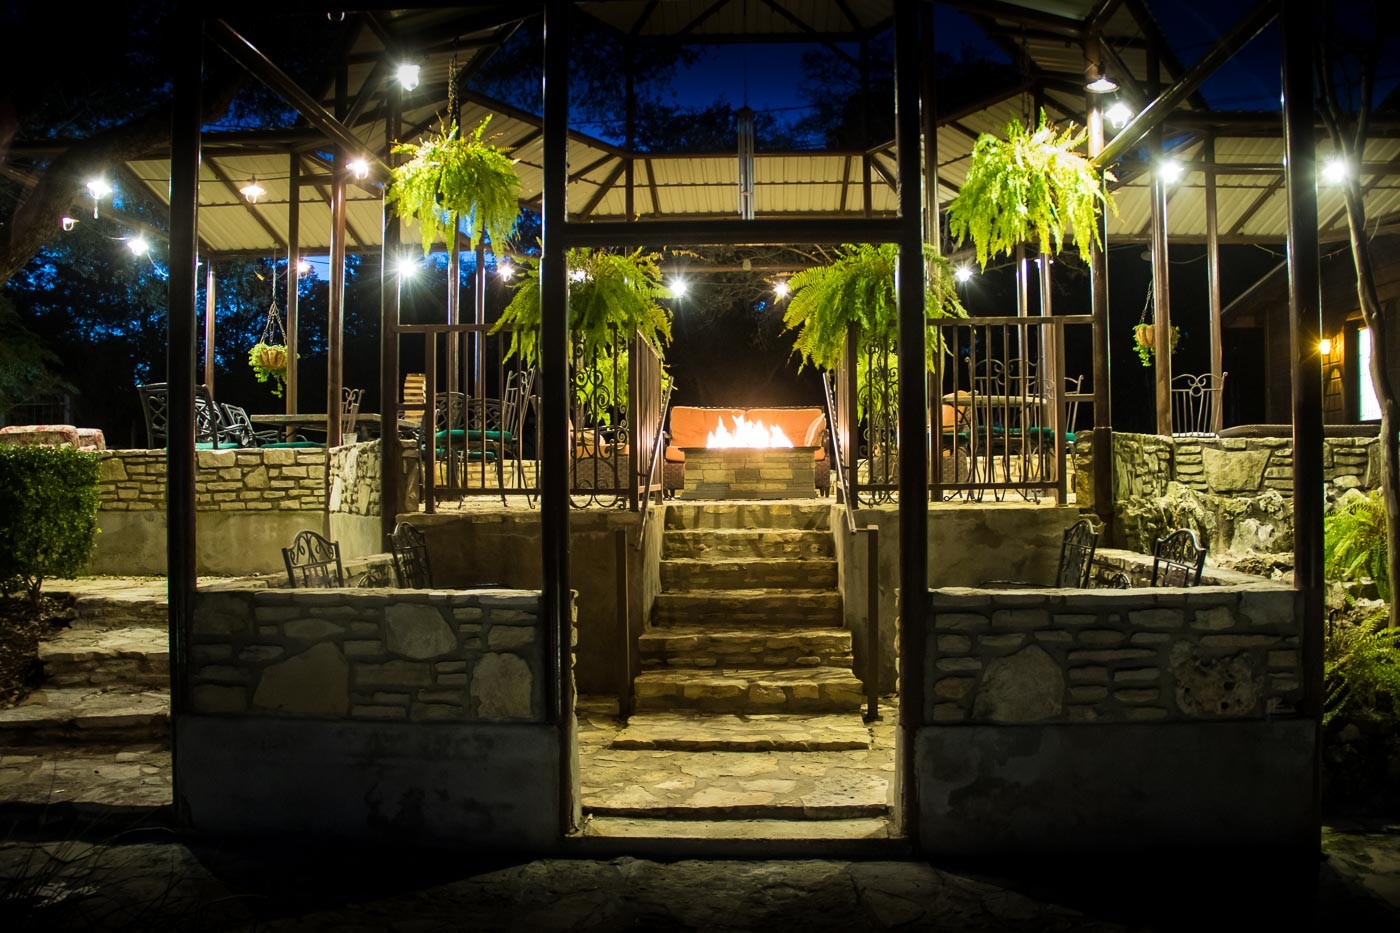 creekhaven greenhouse fire pit night view